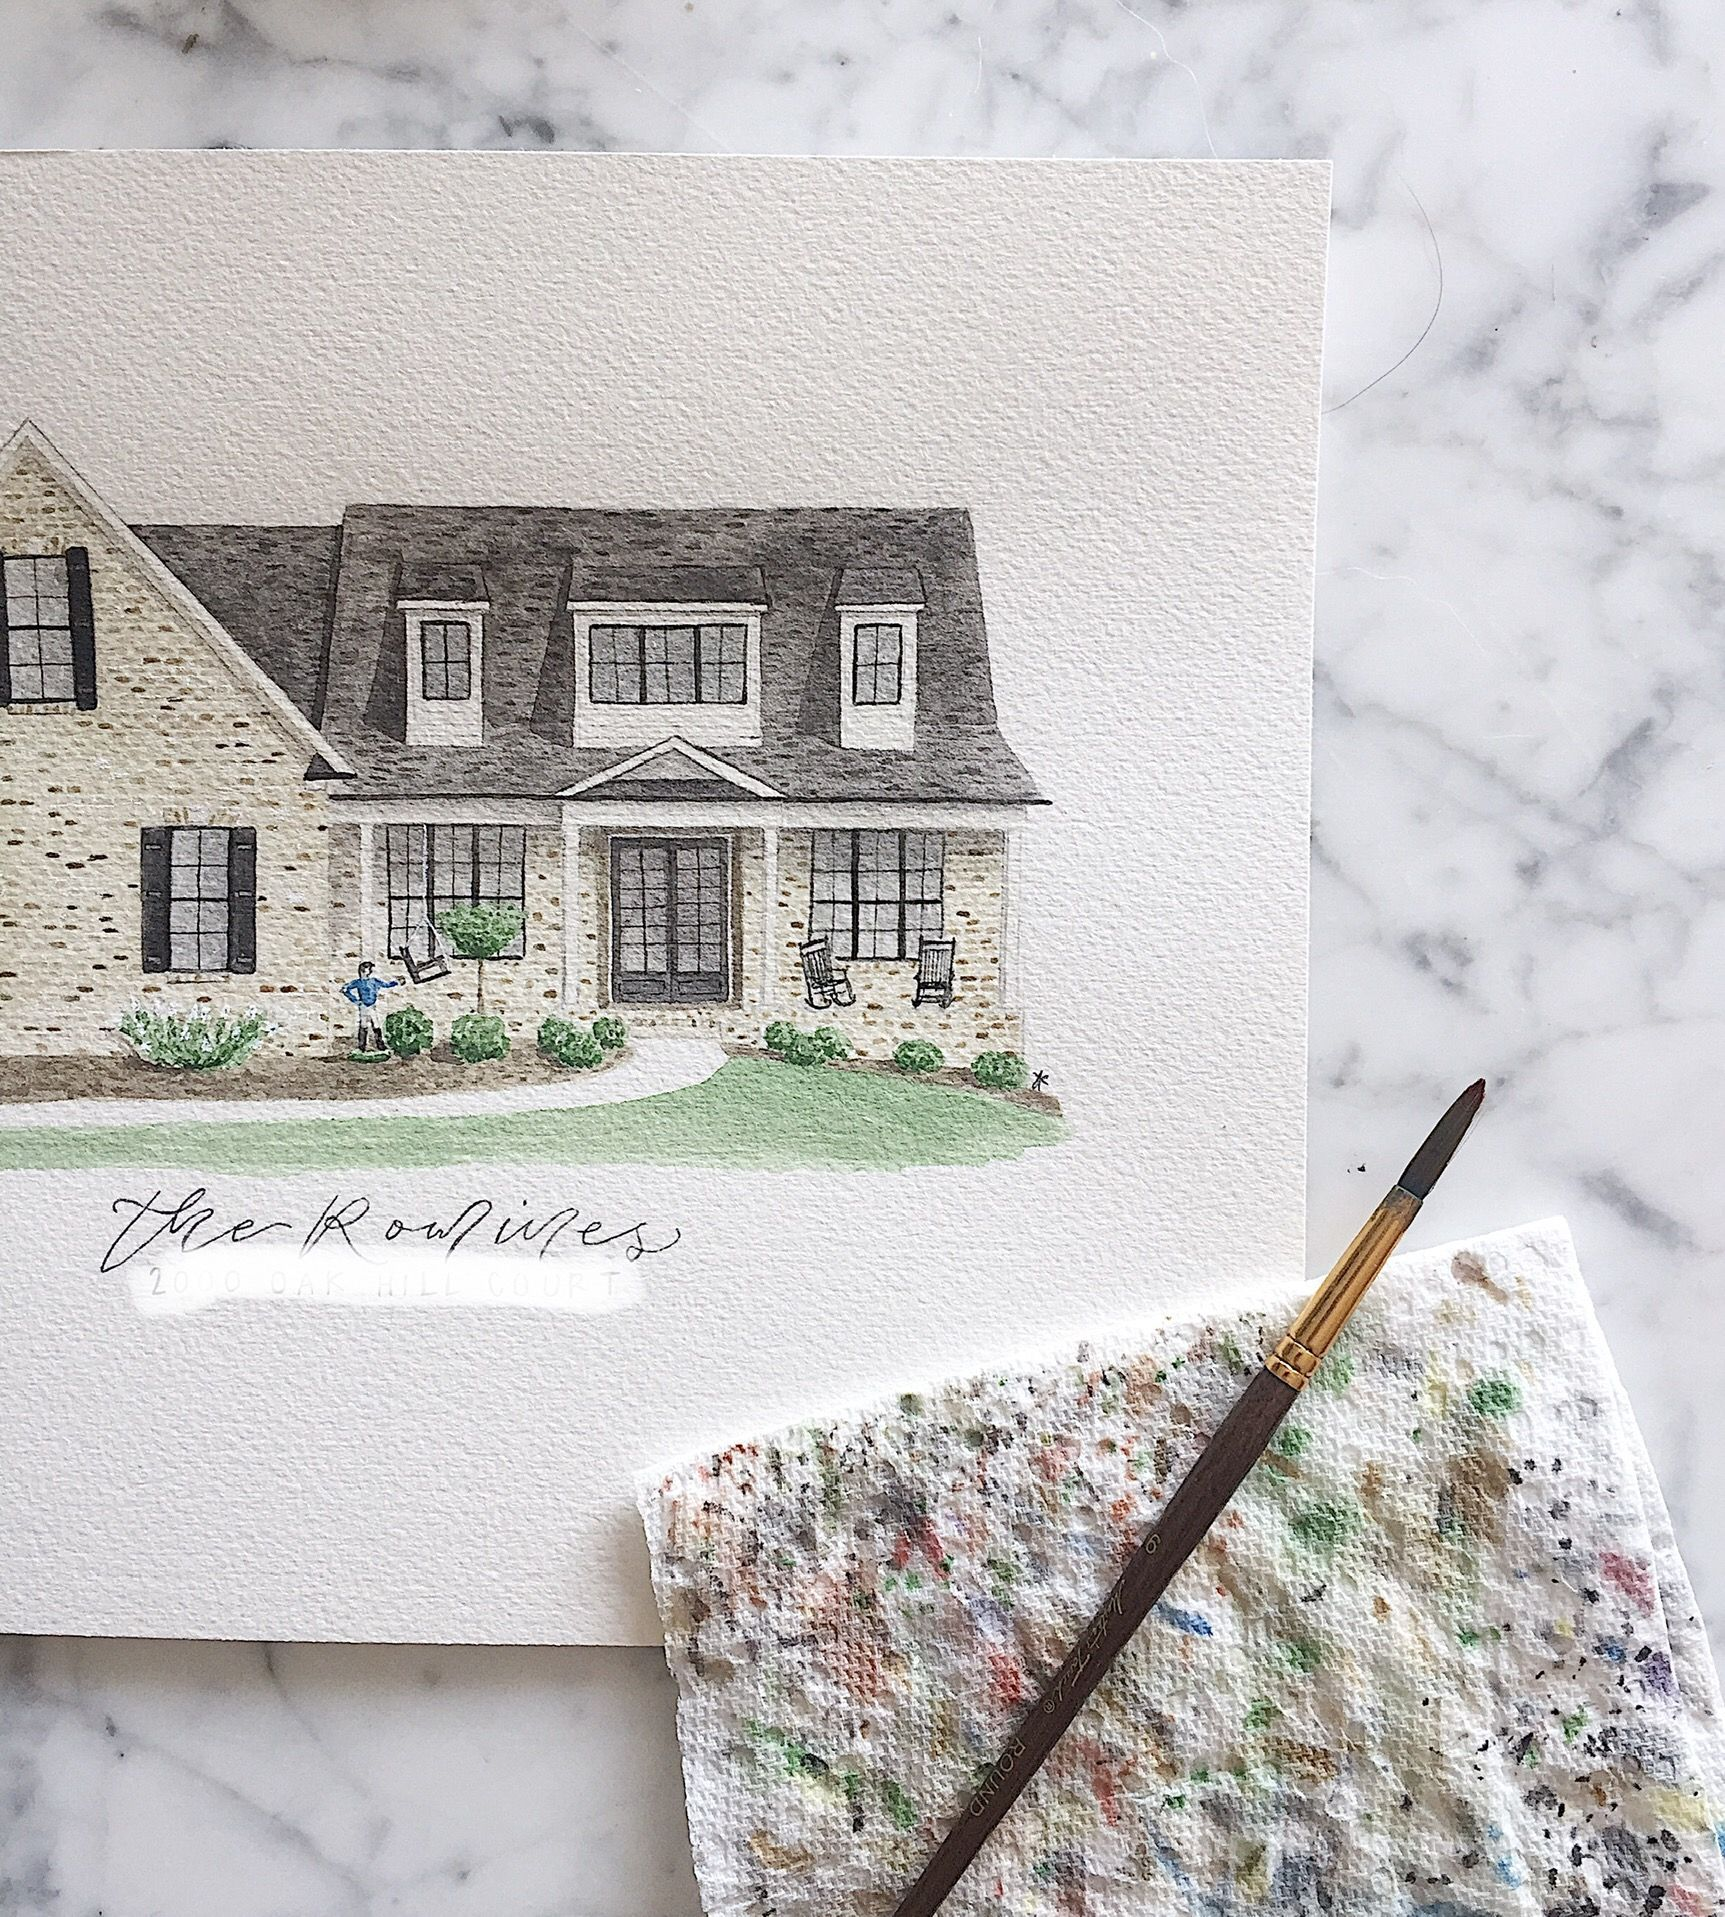 Beautiful watercolor painting of a Kentucky home complete with a jockey #family #familygift #watercolor #watercolorhousepainting #watercolorhouse #home #house #homesweethome #housepainting #custompainting #realtor #realtorgift #housewarminggift #childhoodhome #memory #memories #watercolorhouseportrait